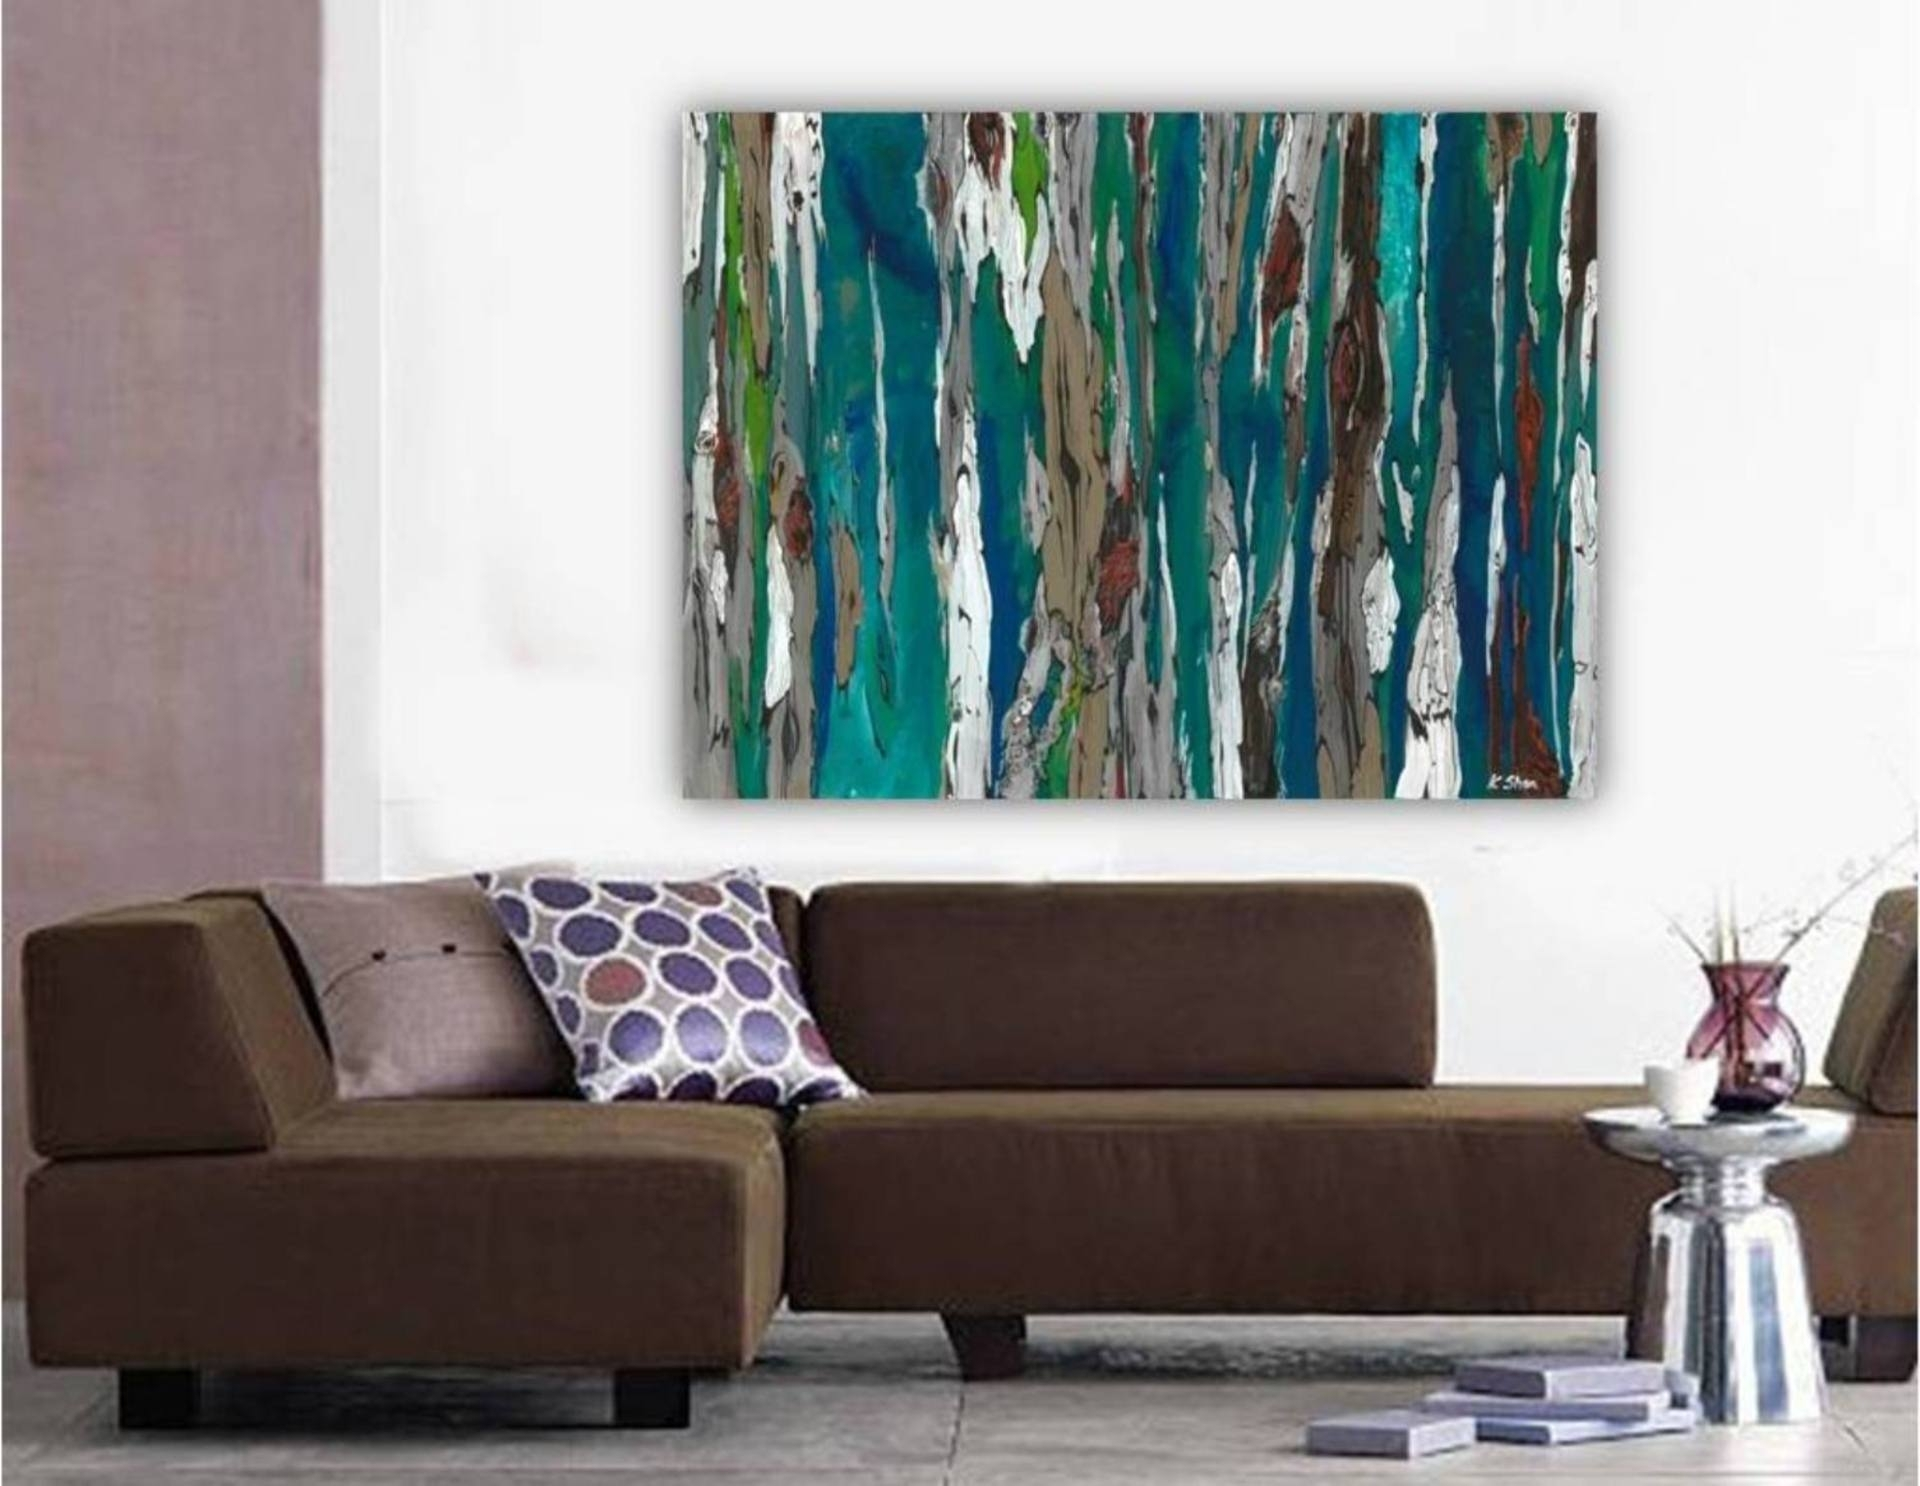 Saatchi Art: Large Contemporary Original Abstract Tree Landscape With Best And Newest Blue And Brown Abstract Wall Art (View 16 of 20)